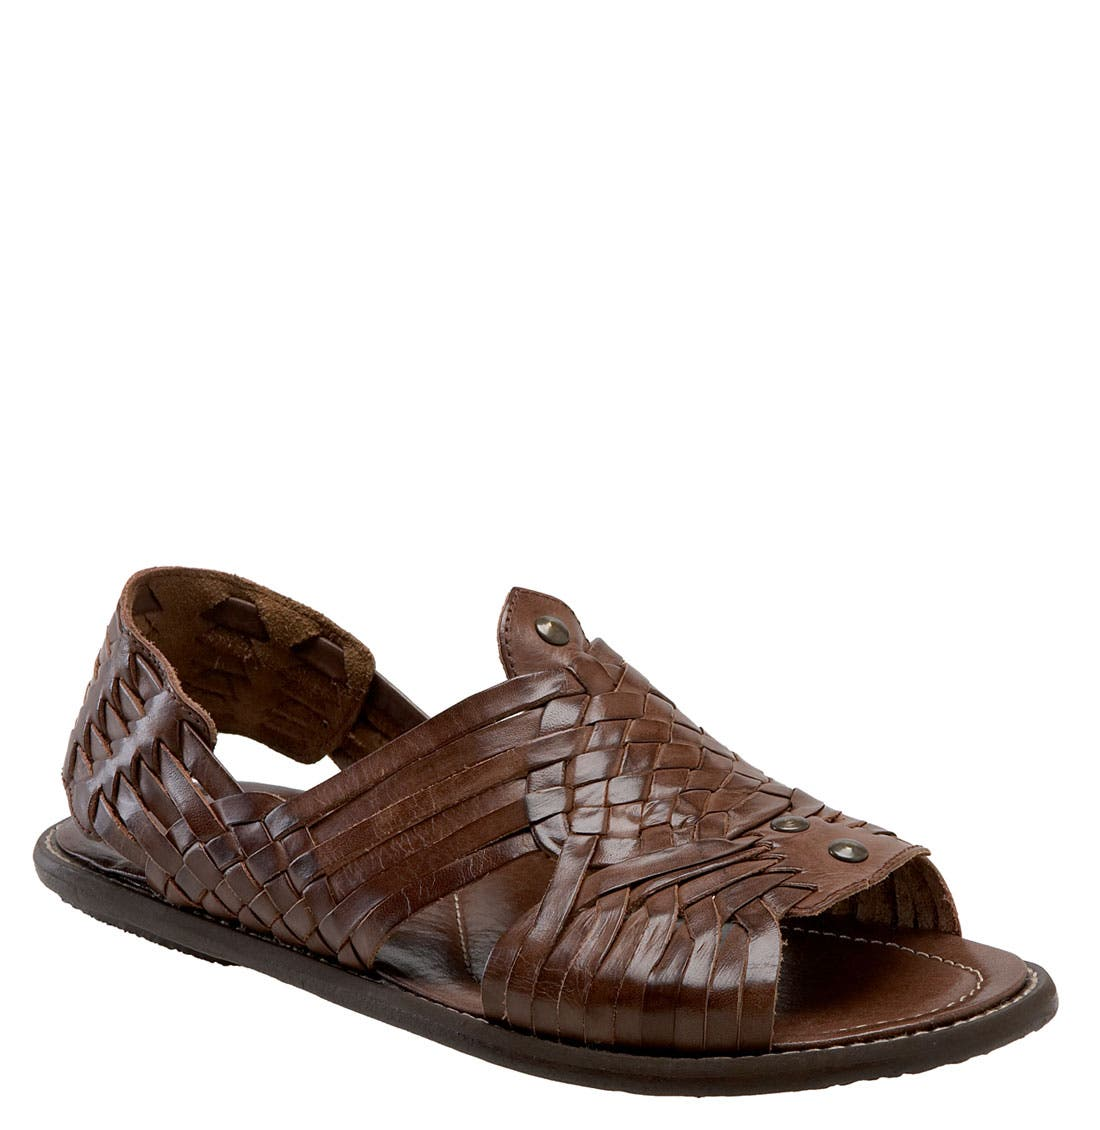 Alternate Image 1 Selected - Bed Stu 'El Duque' Sandal (Men)